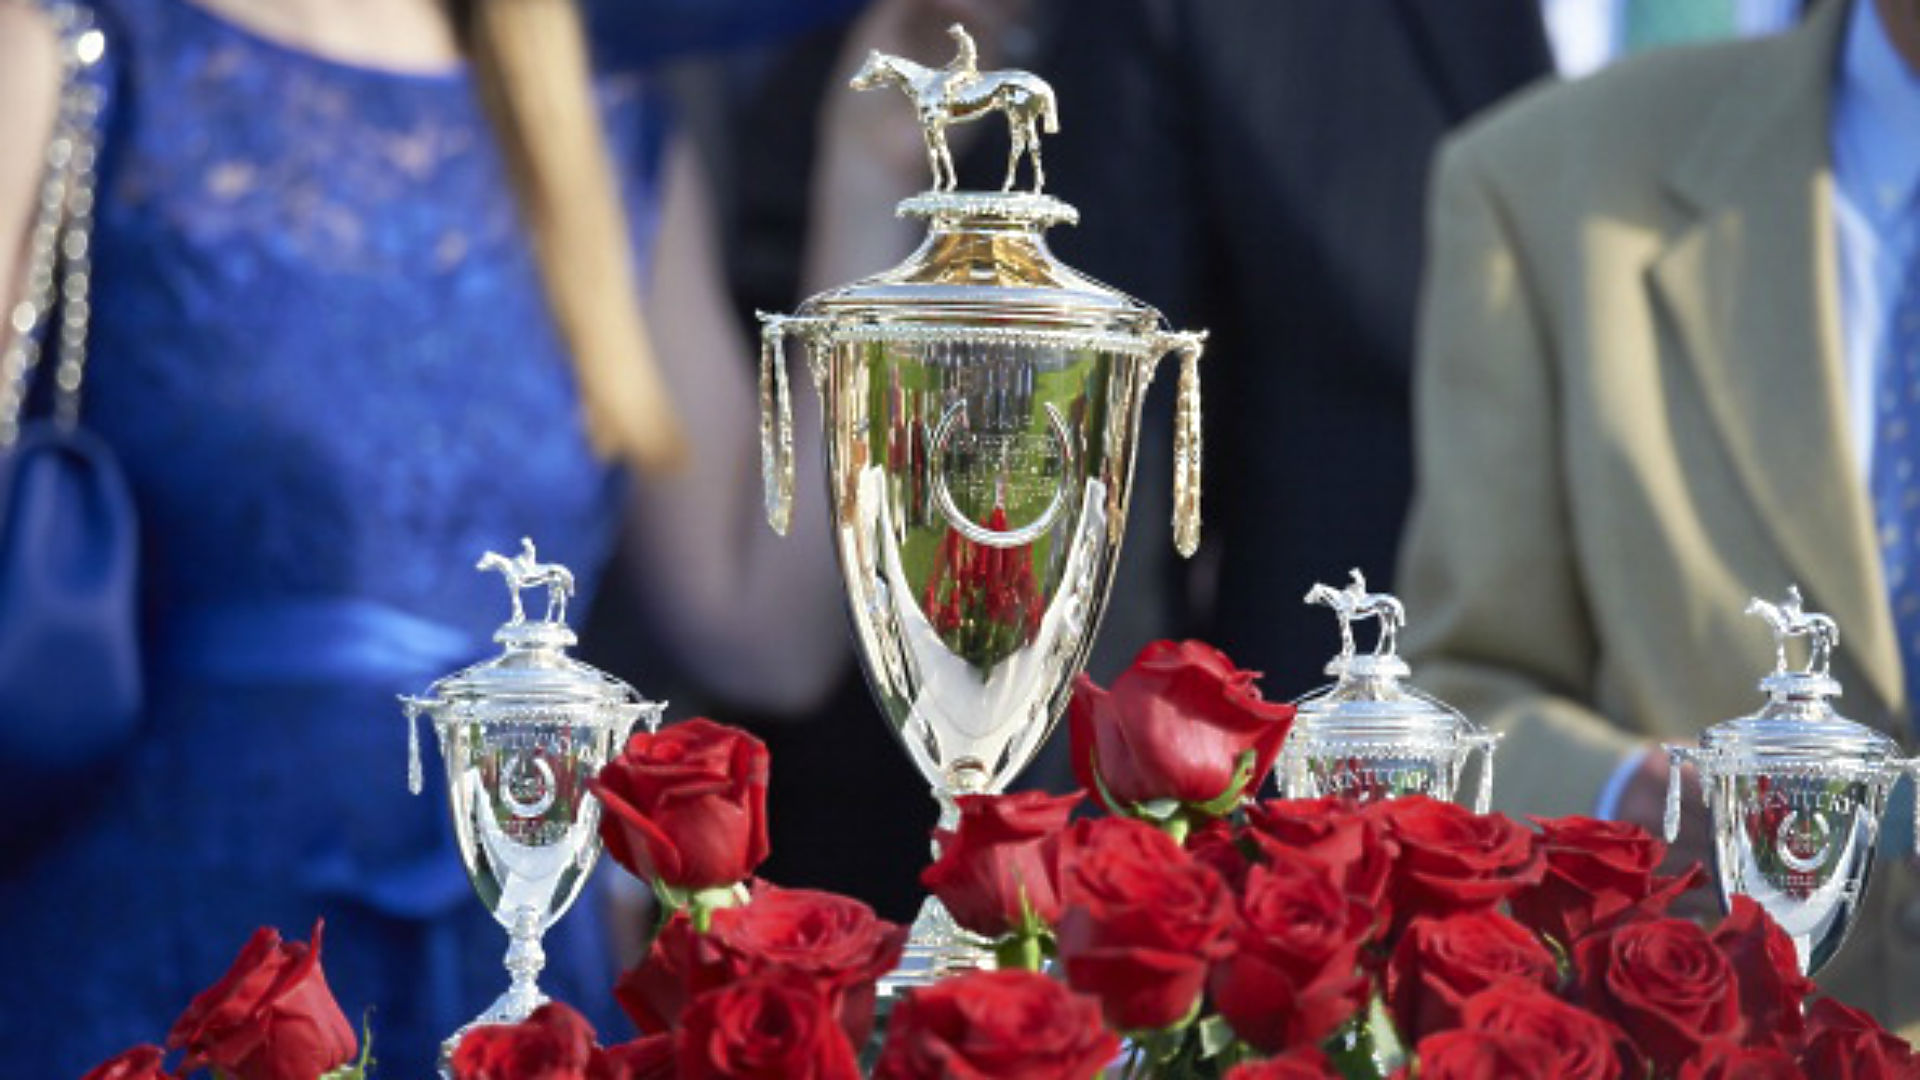 Kentucky Derby Roses-041515-GETTY-FTR.jpg